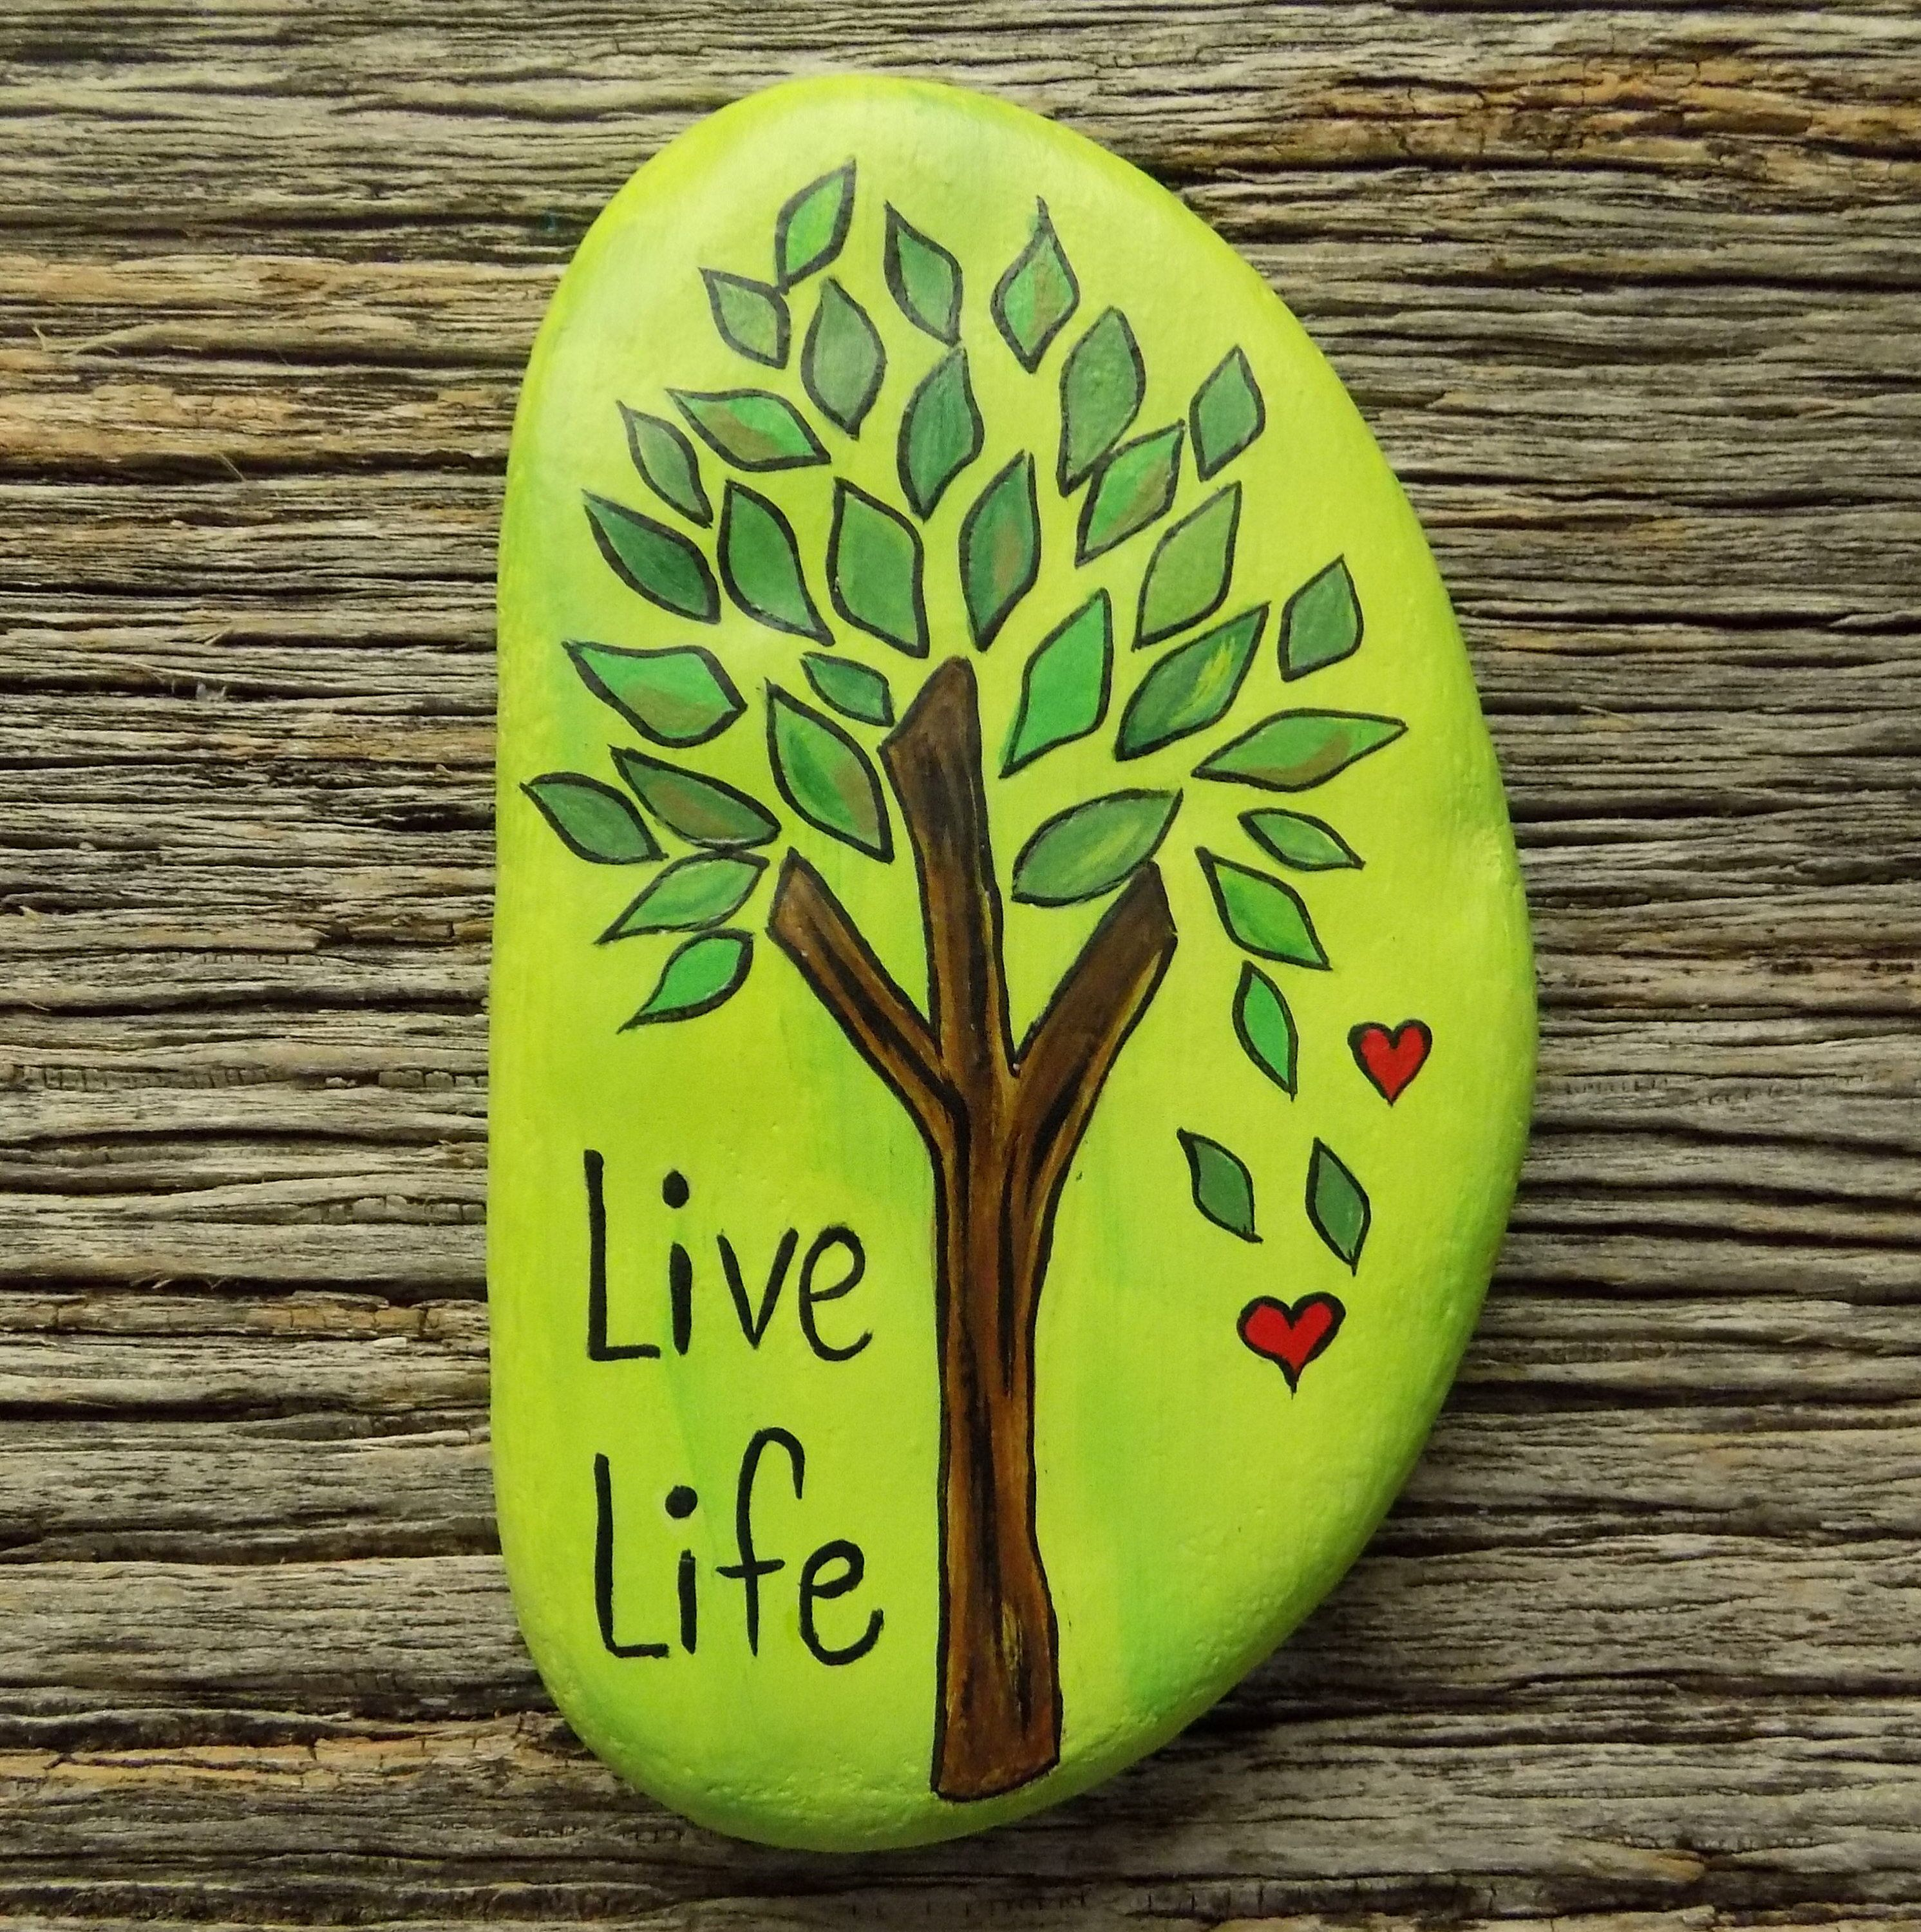 Live Life Tree Painted Rock Decorative Accent Stone Paperweight